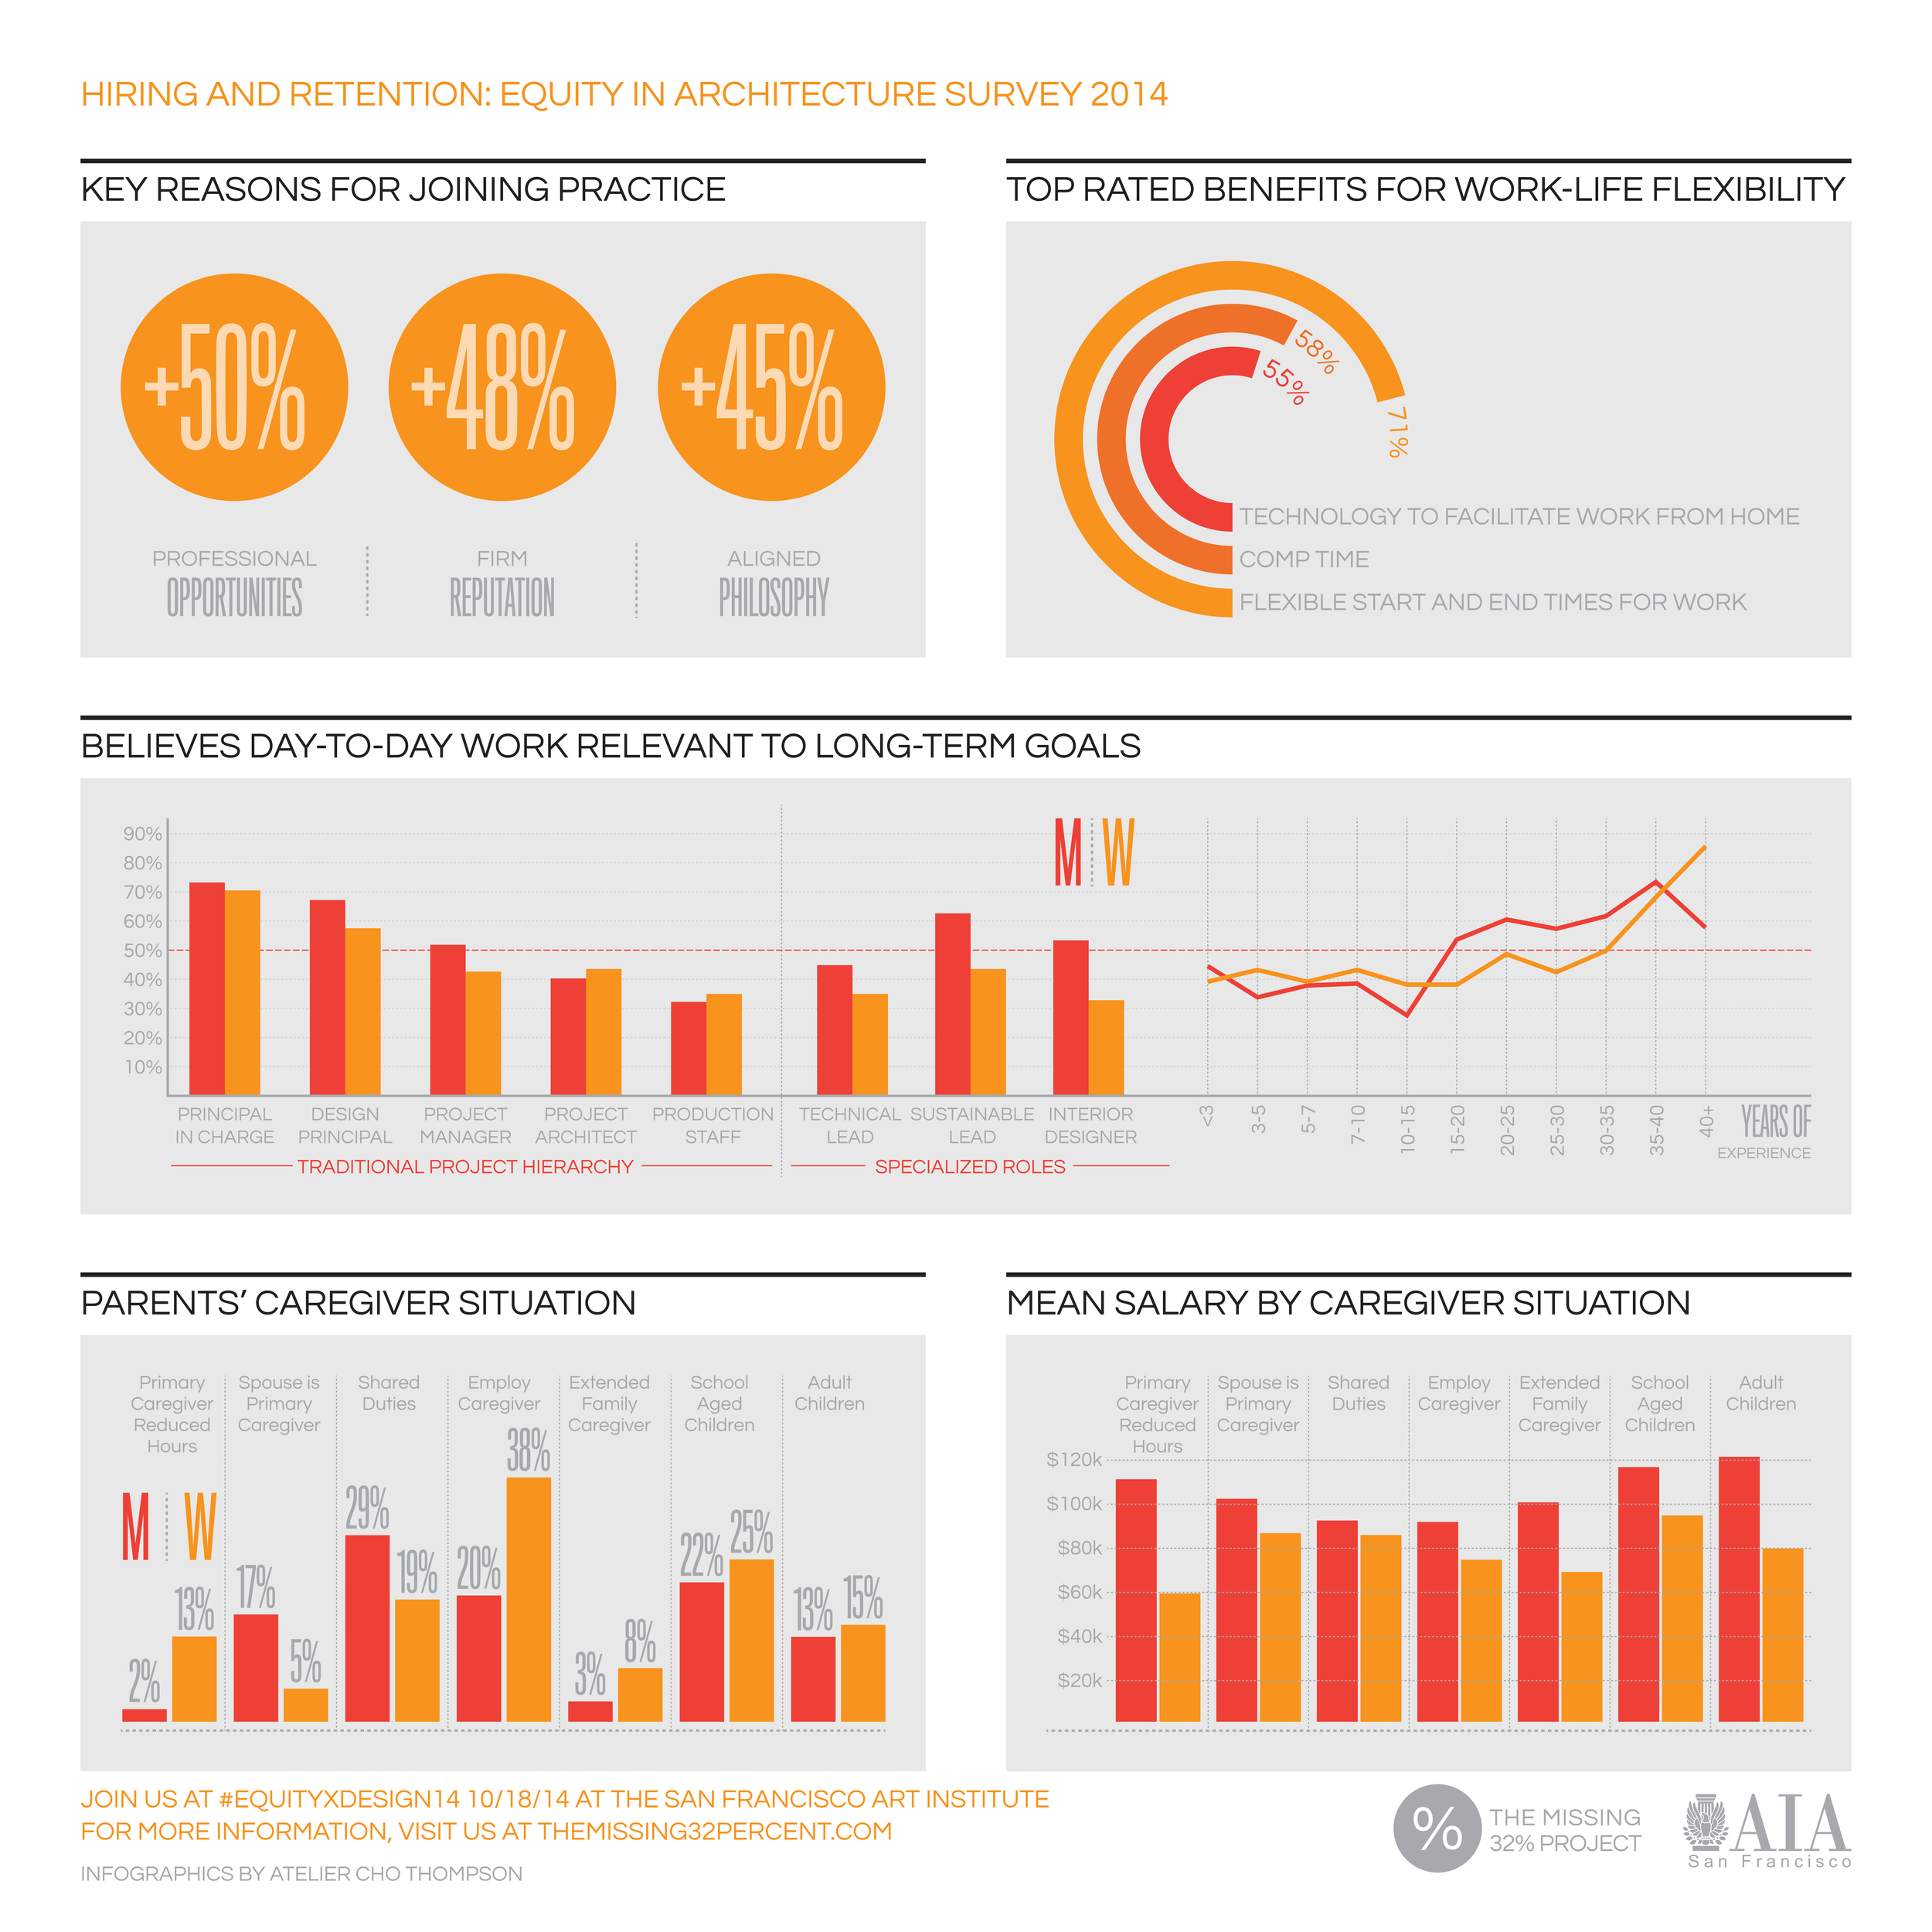 14_1105 Final Approved Infographics Boards UPDATED-4.jpg